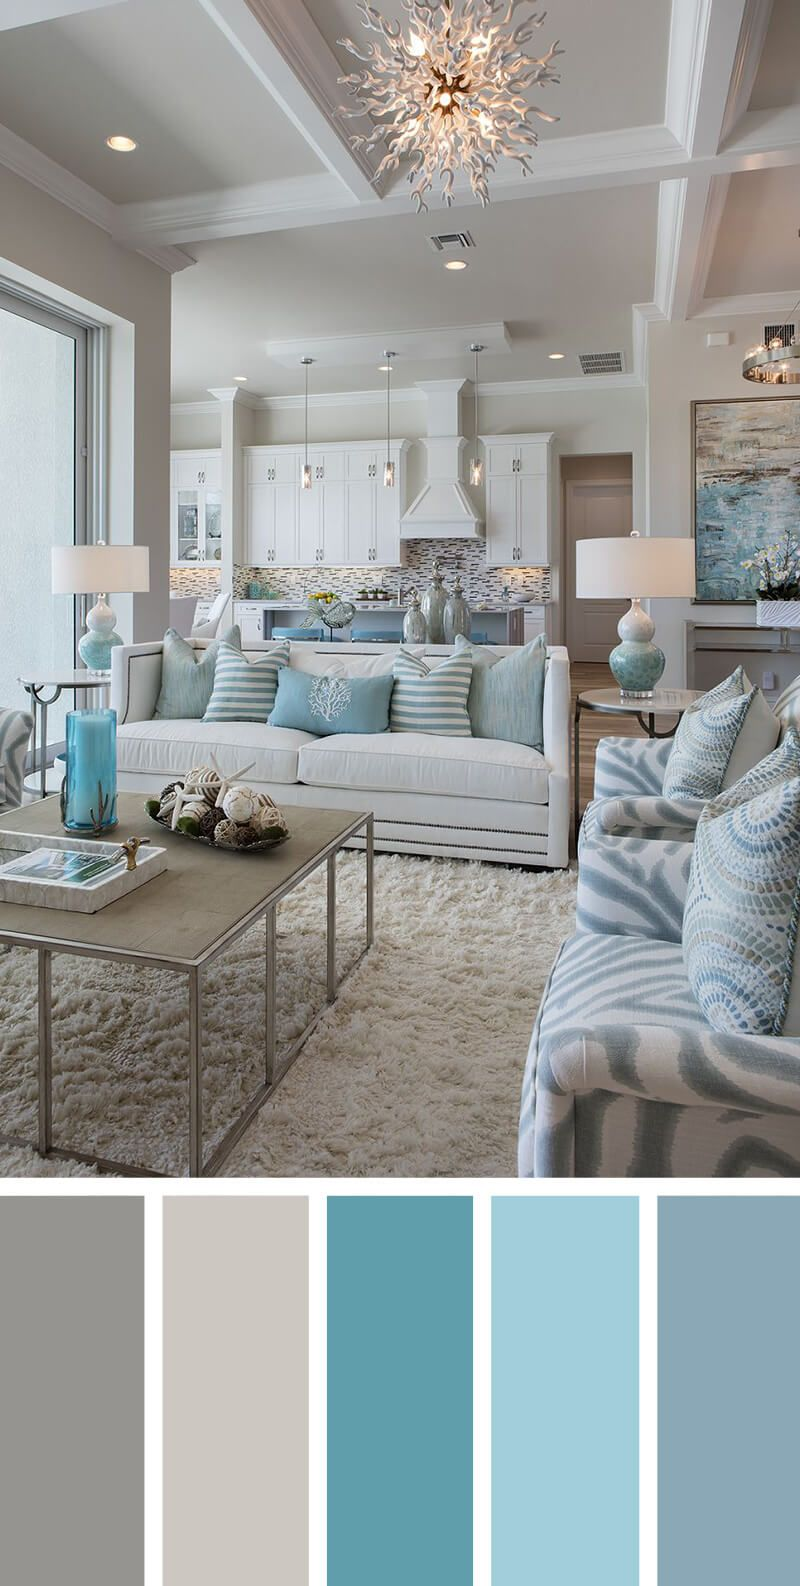 A Calming Sea Of Blues. Very Comfy And Cozy. Living Room Decor Turquoise,